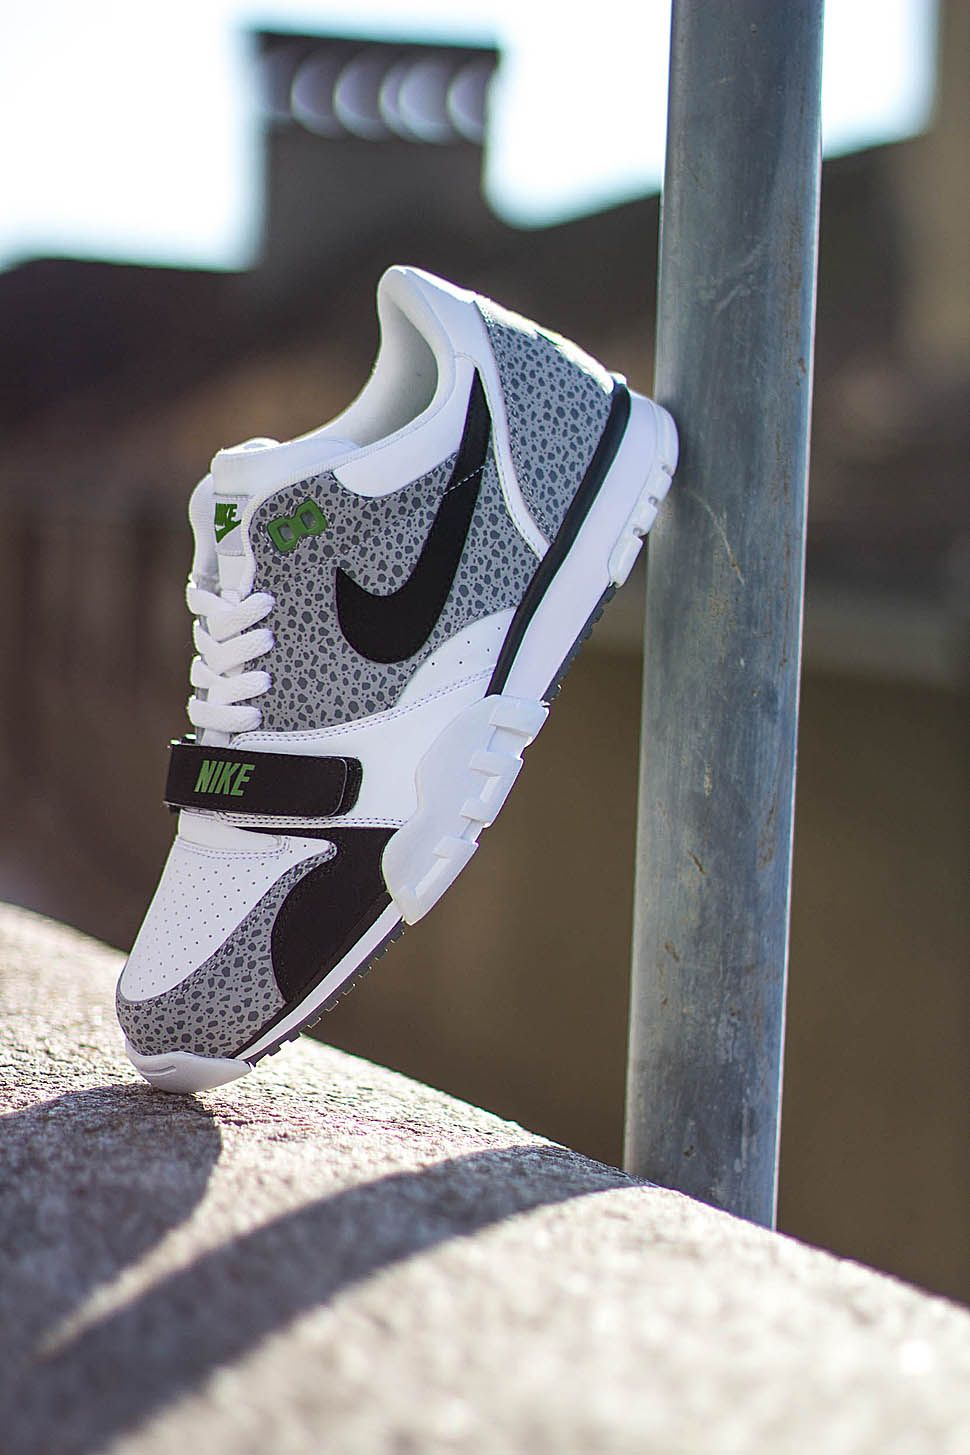 watch b7b6b d5dd4 1000+ images about shoes on Pinterest Jordan shoes, Cheap nike and Trainers  Concord Makes An Appearance On The Nike Air Trainer 1 Low ...